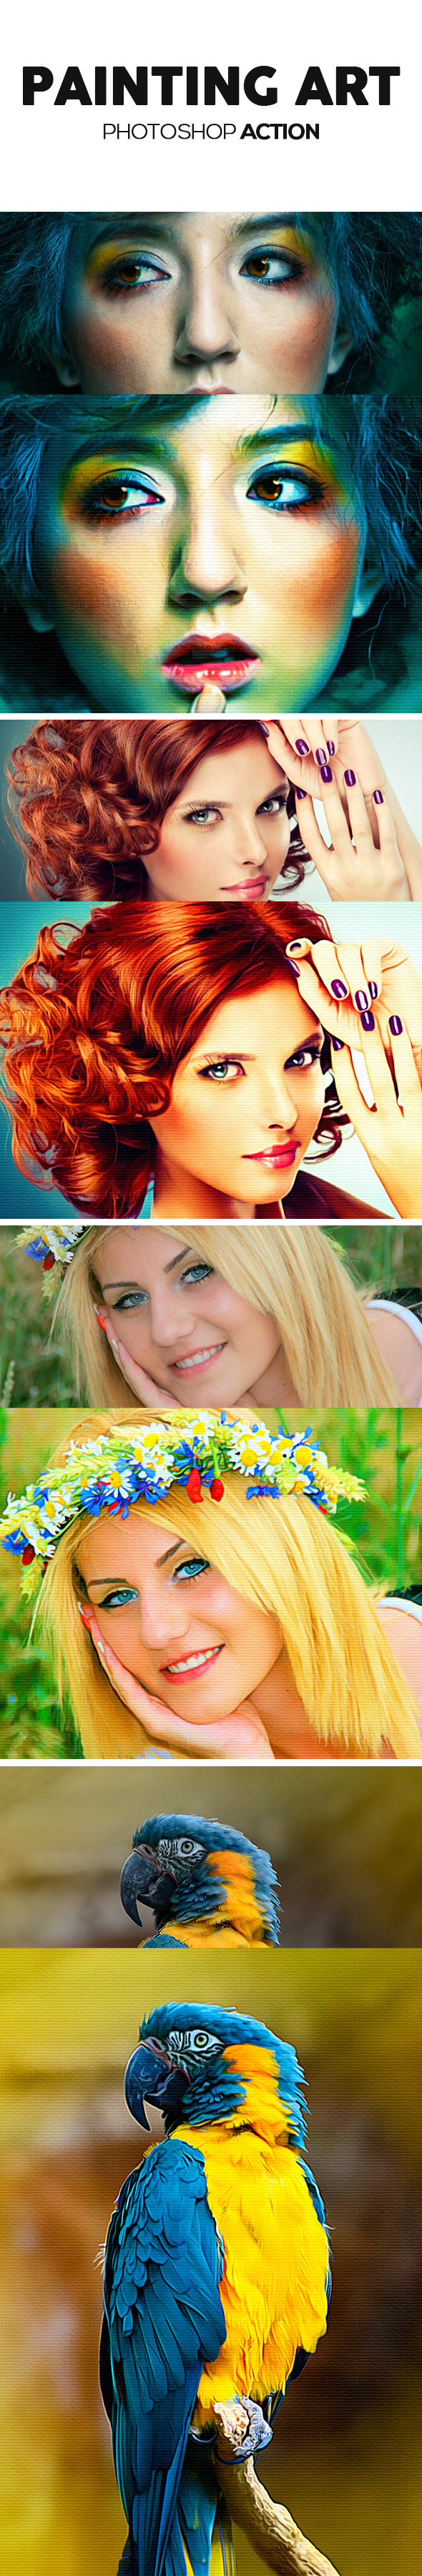 Painting Art Photoshop Action - Photo Effects Actions